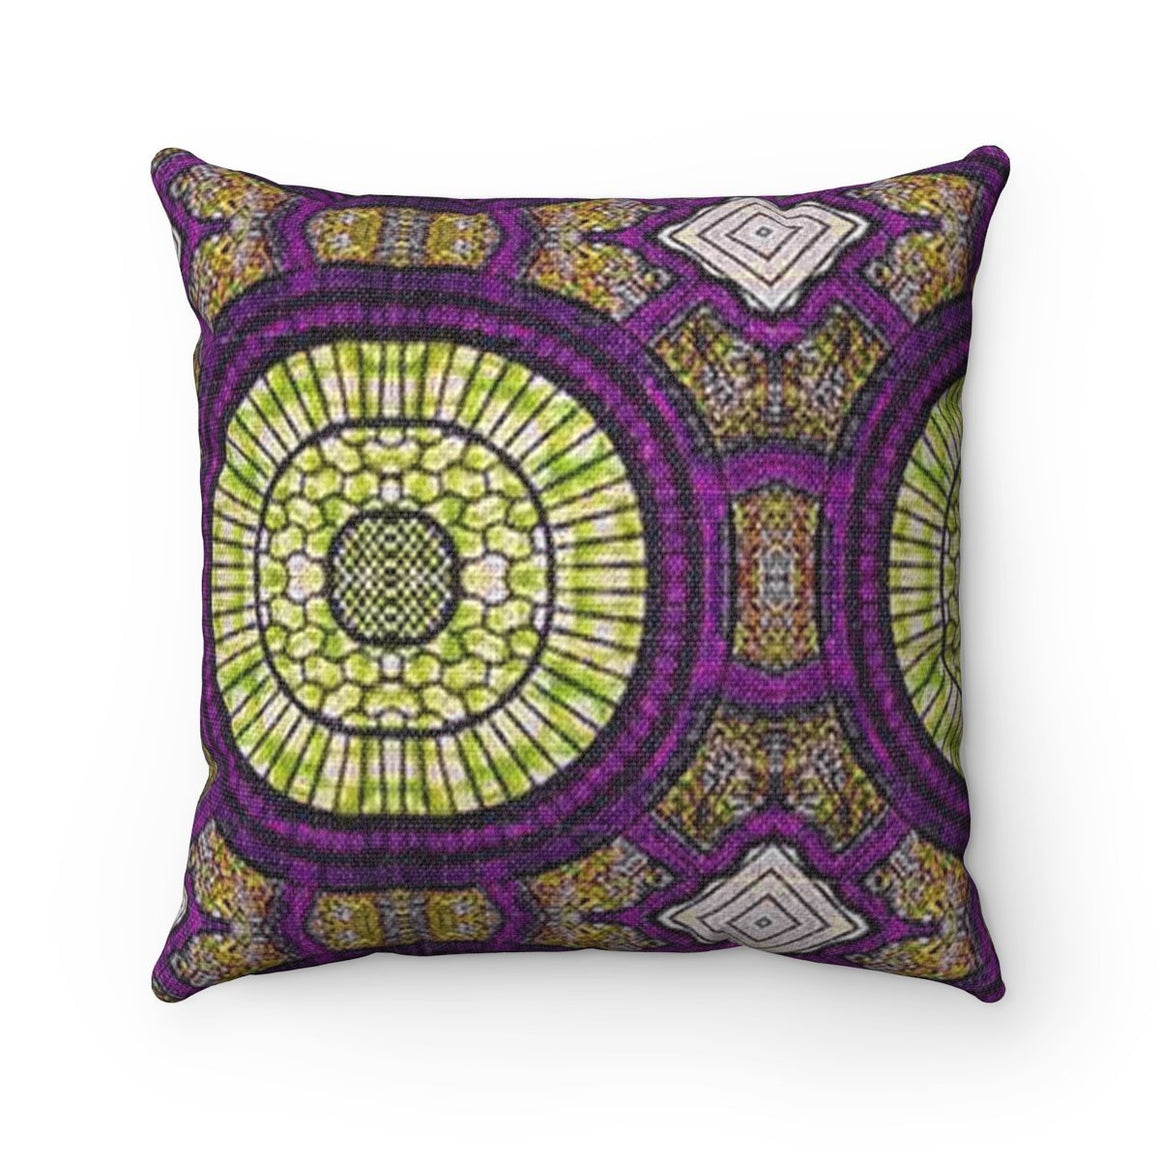 Modern Purple Pillow Home Decor 14x14